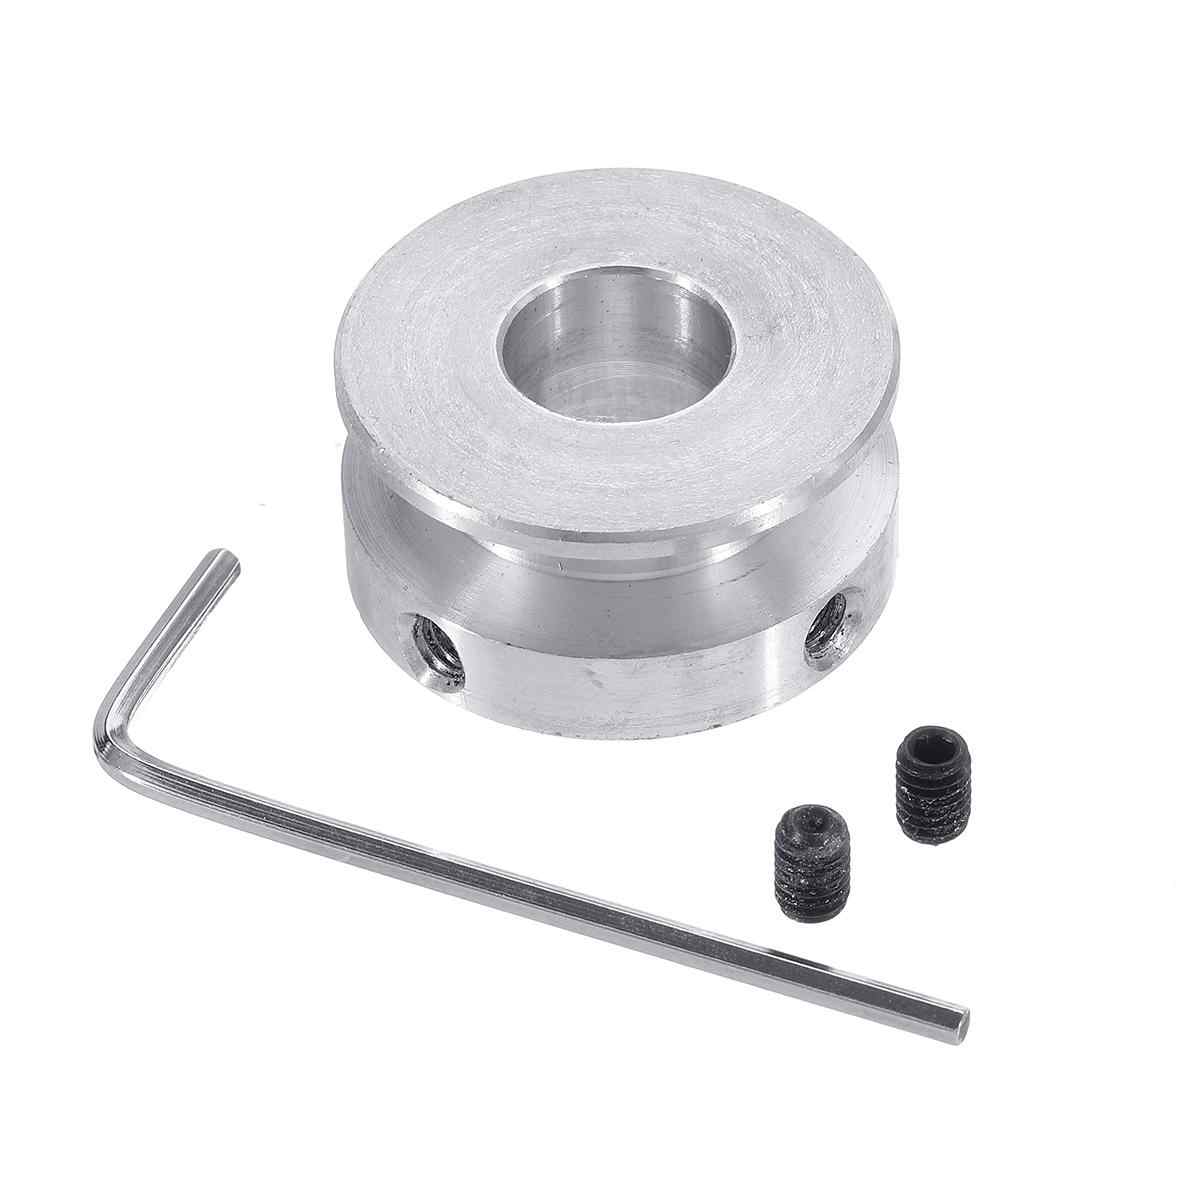 Width : 15mm JINSUO GQZMBM 1PC Silver Aluminum Alloy 30MM Single Groove Pulley 4-16MM Fixed Bore Pulley Wheel for Motor Shaft 6MM Round Belt